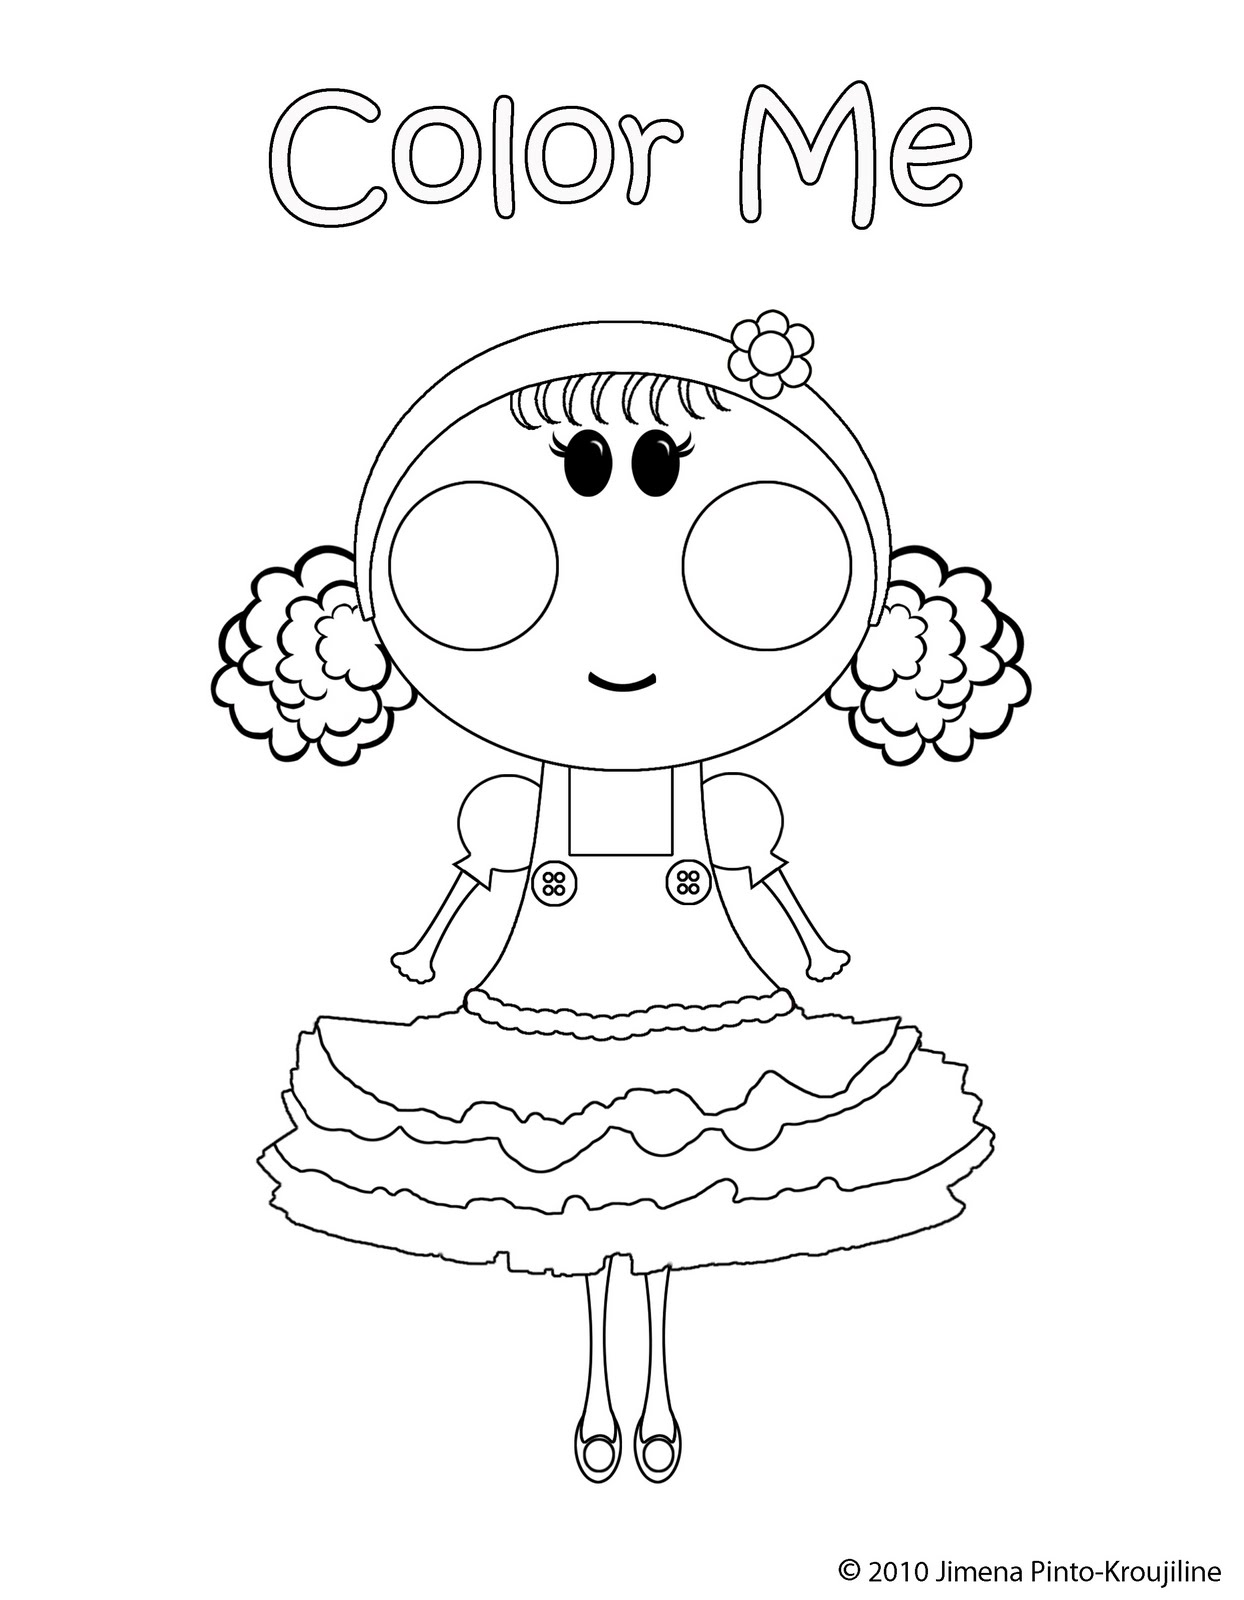 amelia bedelia coloring pages images of teen   What is Amelia up to?: Fun Activities with Amelia